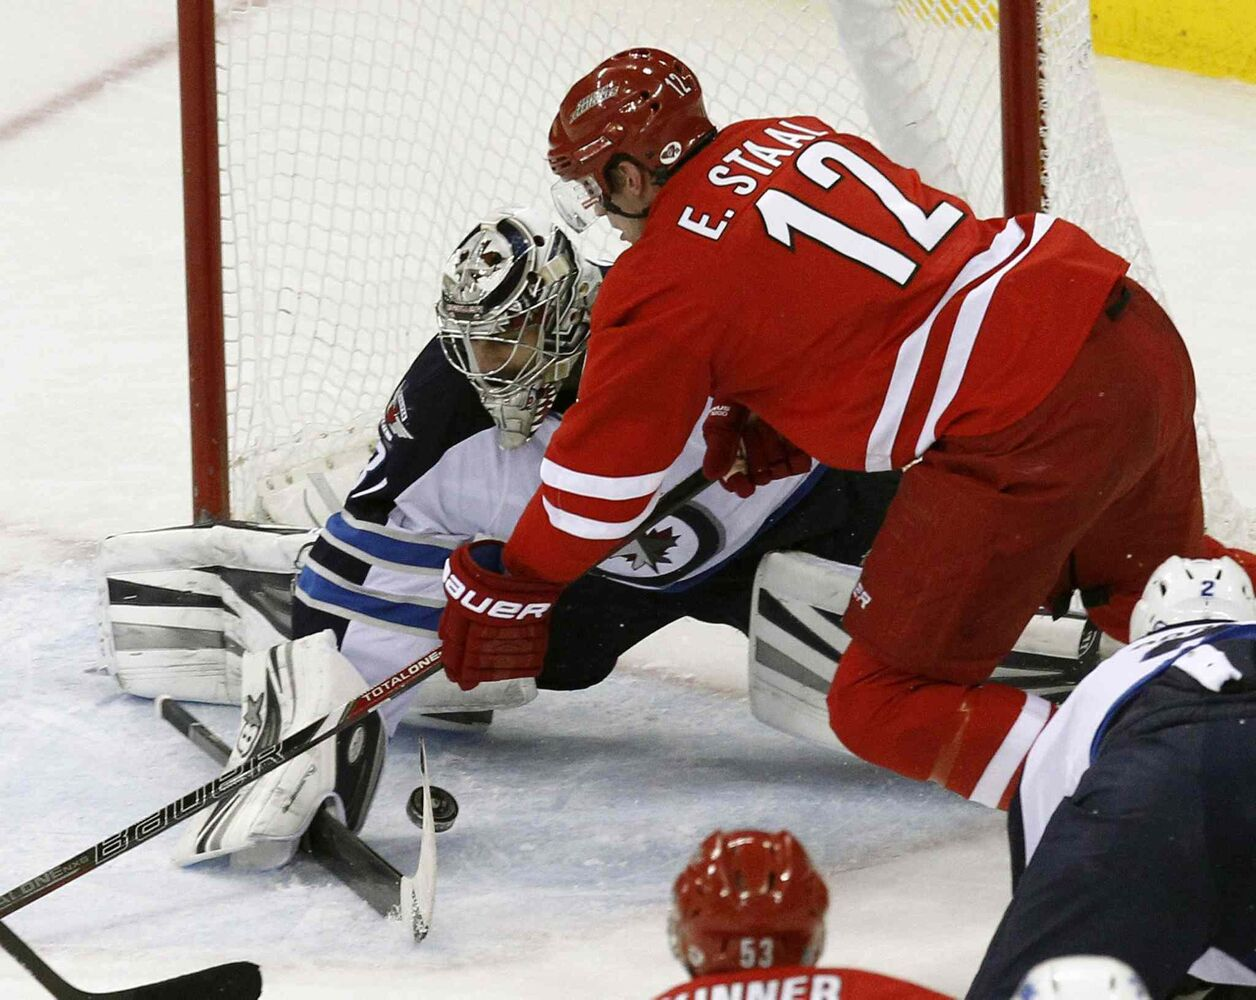 Carolina Hurricanes' Eric Staal (12) can't score against Winnipeg Jets' Ondrej Pavelec (31) during the second period at the PNC Arena in Raleigh, N.C., on Tuesday.